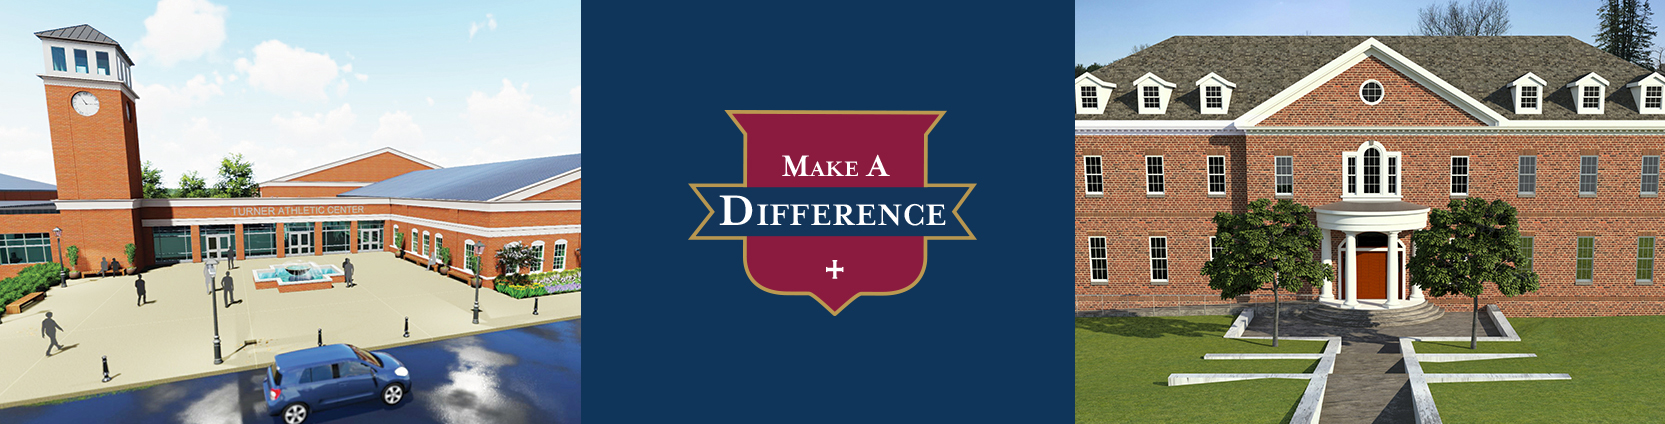 Make a Difference - Capital Campaign for Saint James School